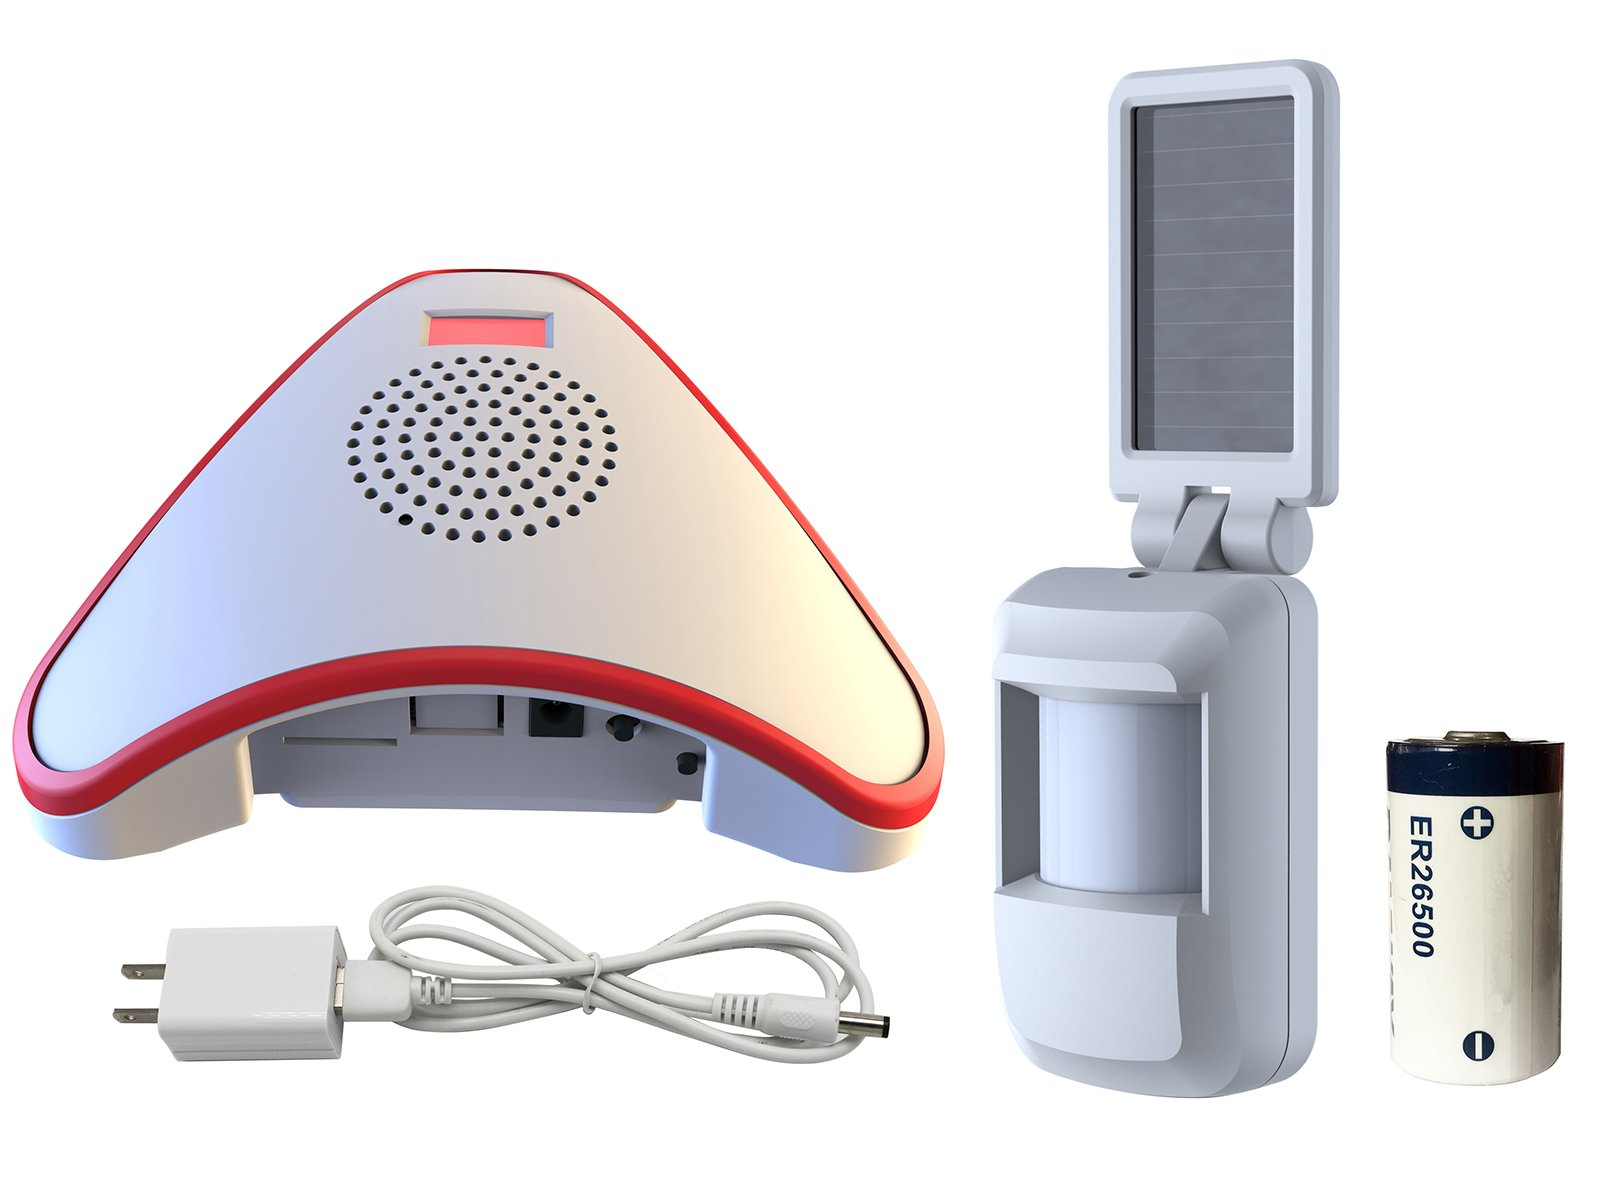 HTZSAFE Solar Wireless Indoor Motion Alarm System-No Need Replace The Battery-Sensor Included 9000mAh Lithium Battery-Home/Business Driveway security Alarm With 1 Sensor and 1 Receiver